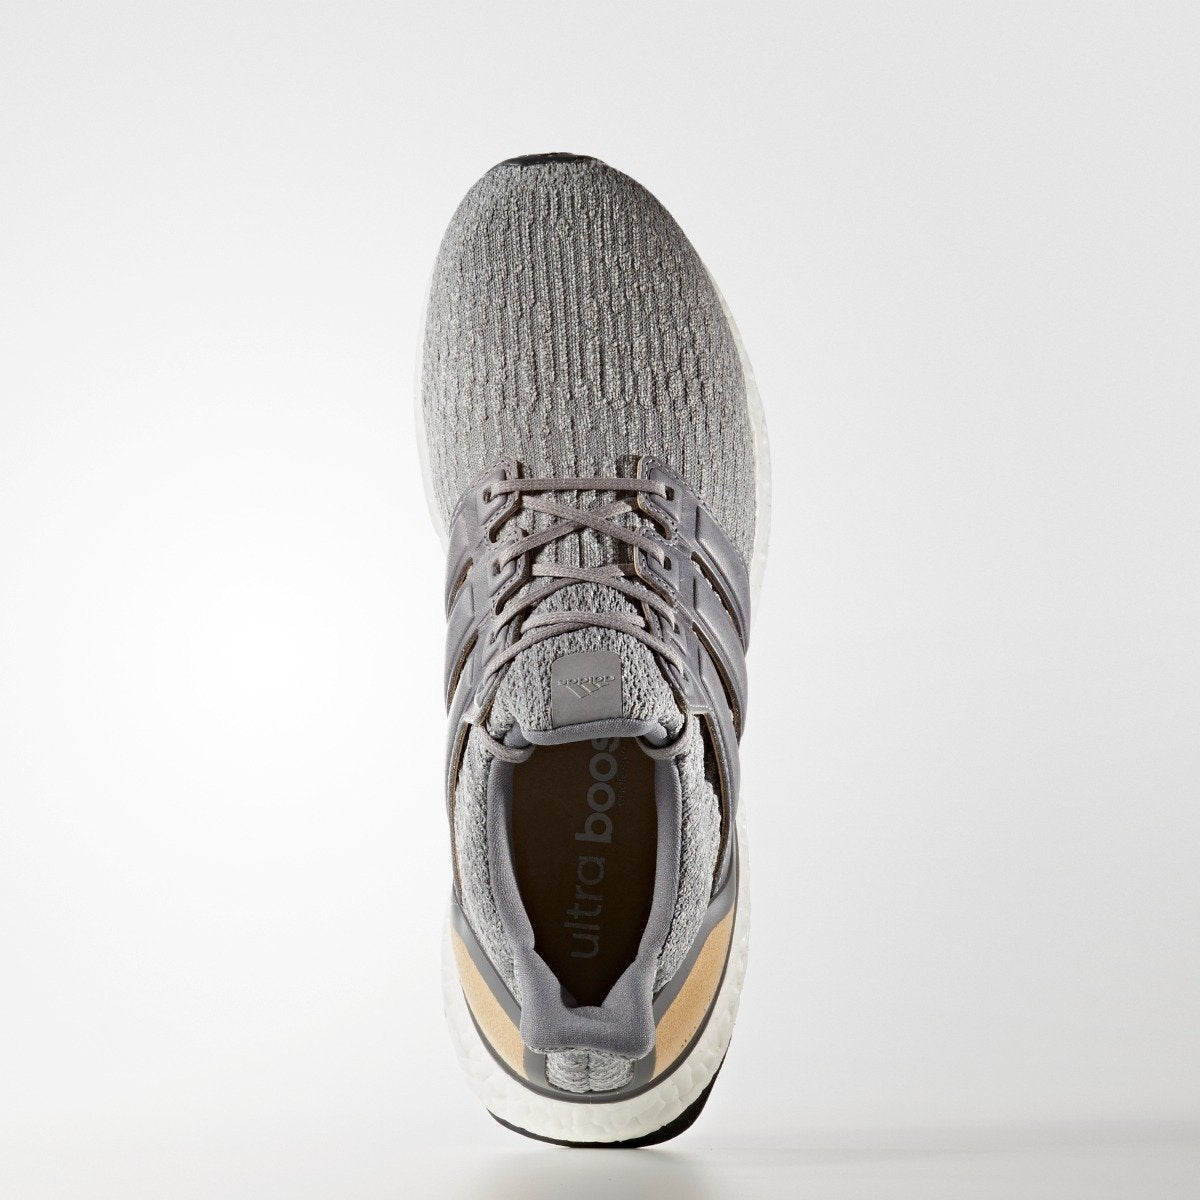 b29e4c0e2448a Men s Adidas Running Ultraboost 3.0 Limited Edition Leather Cage Grey. 1